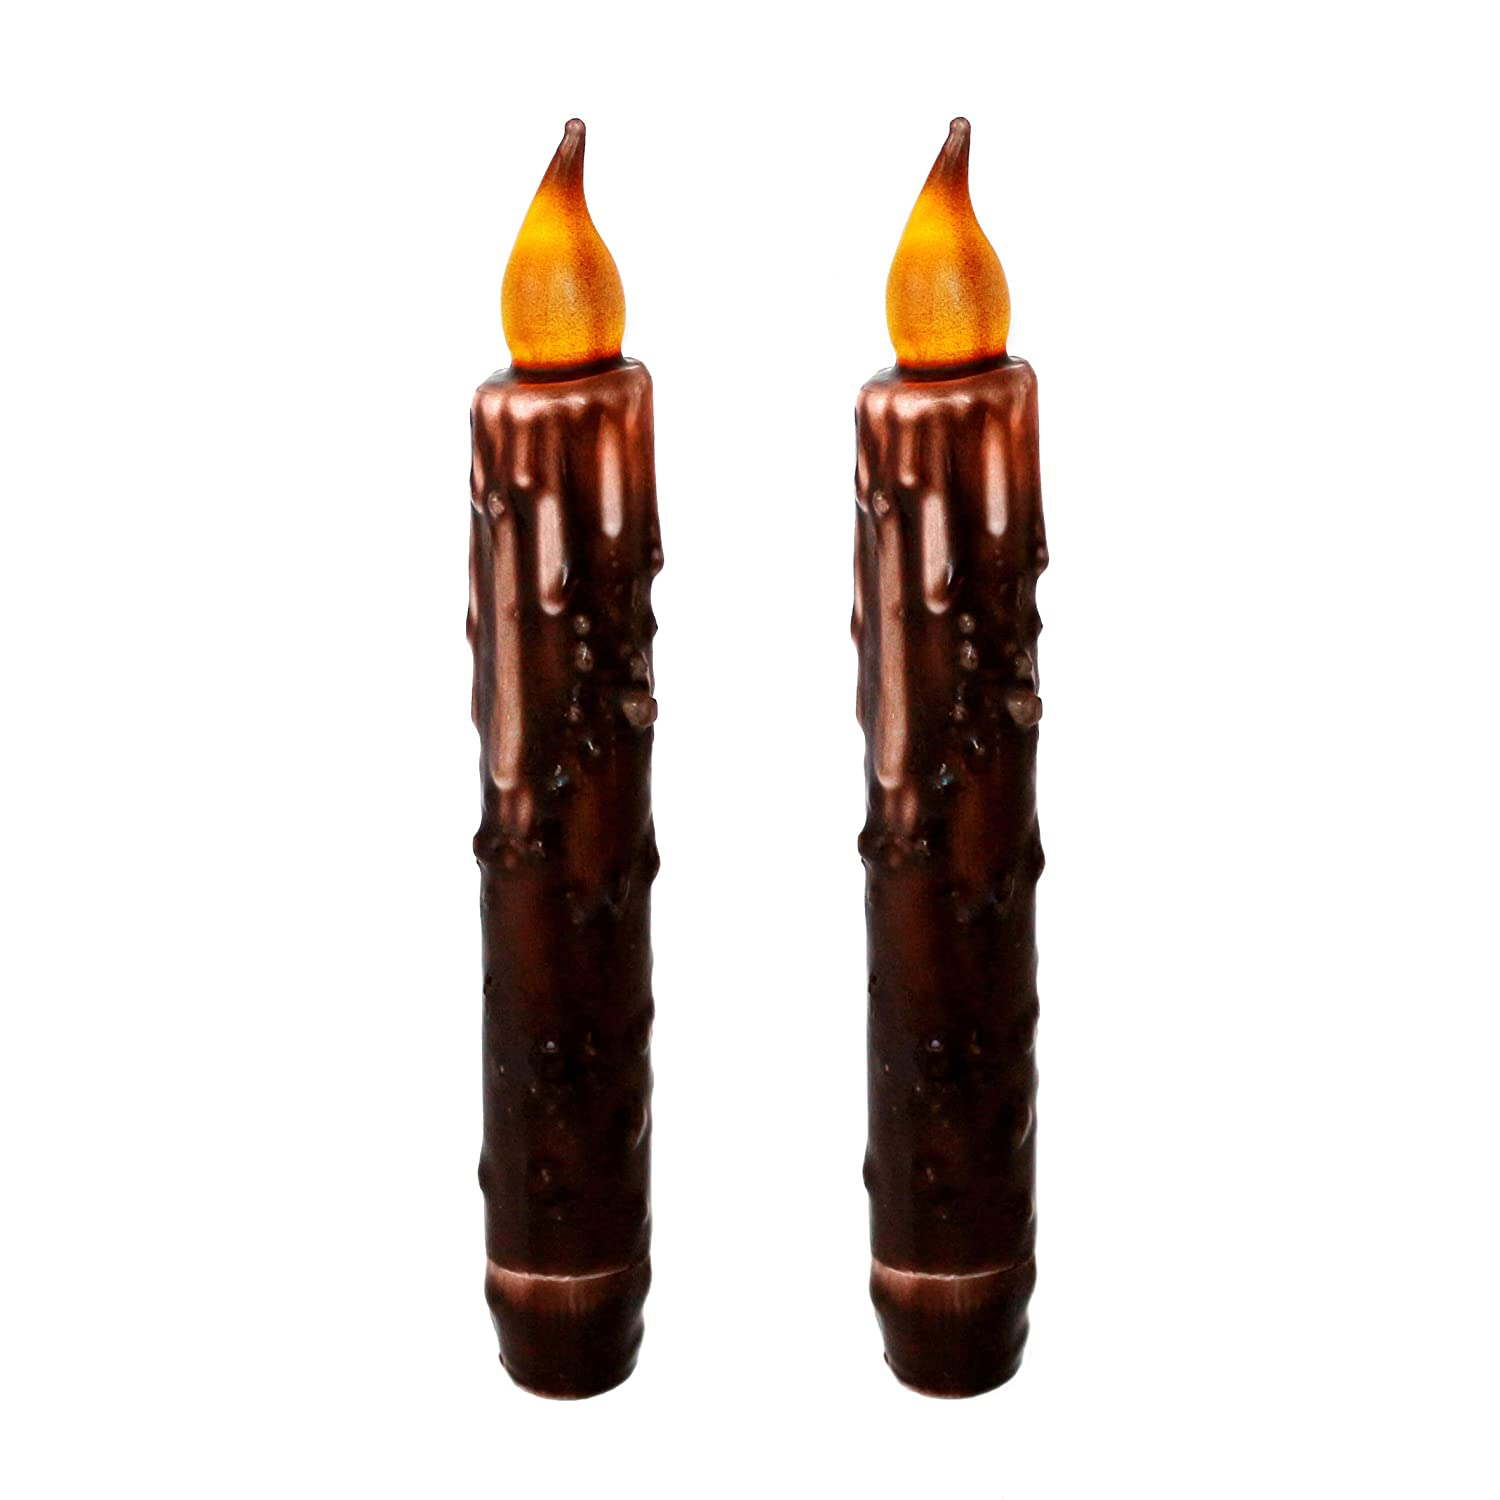 CVHOMEDECO. Real Wax Hand Dipped Battery Operated LED Timer Taper Candles Country Primitive Flameless Lights Décor, 6-3/4L, Brown, 2 PCS in a Package 6-3/4L CV00020